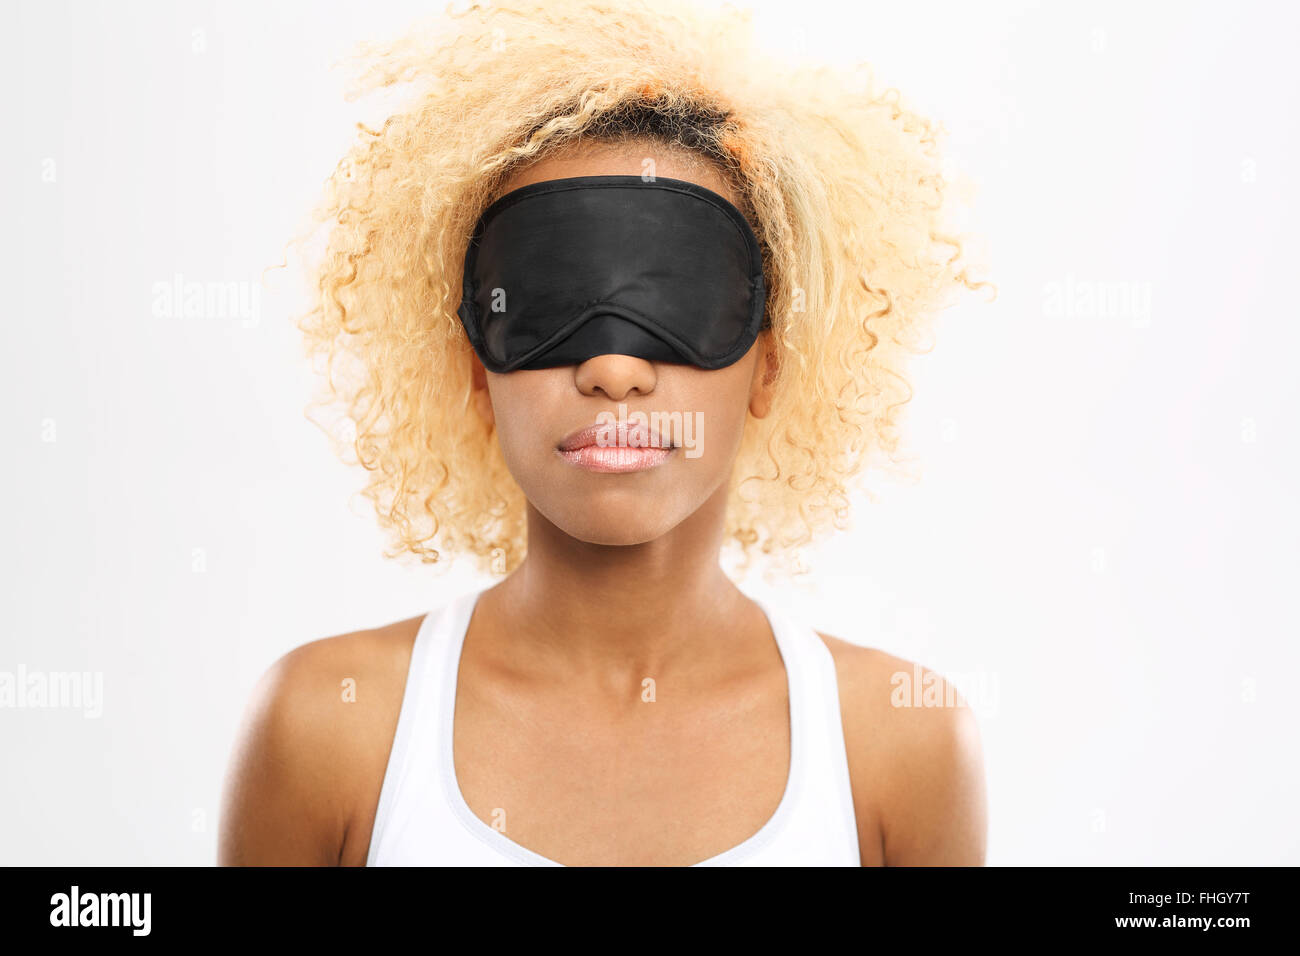 Restful sleep.. Young woman with eyes blindfolded band on eyes - Stock Image